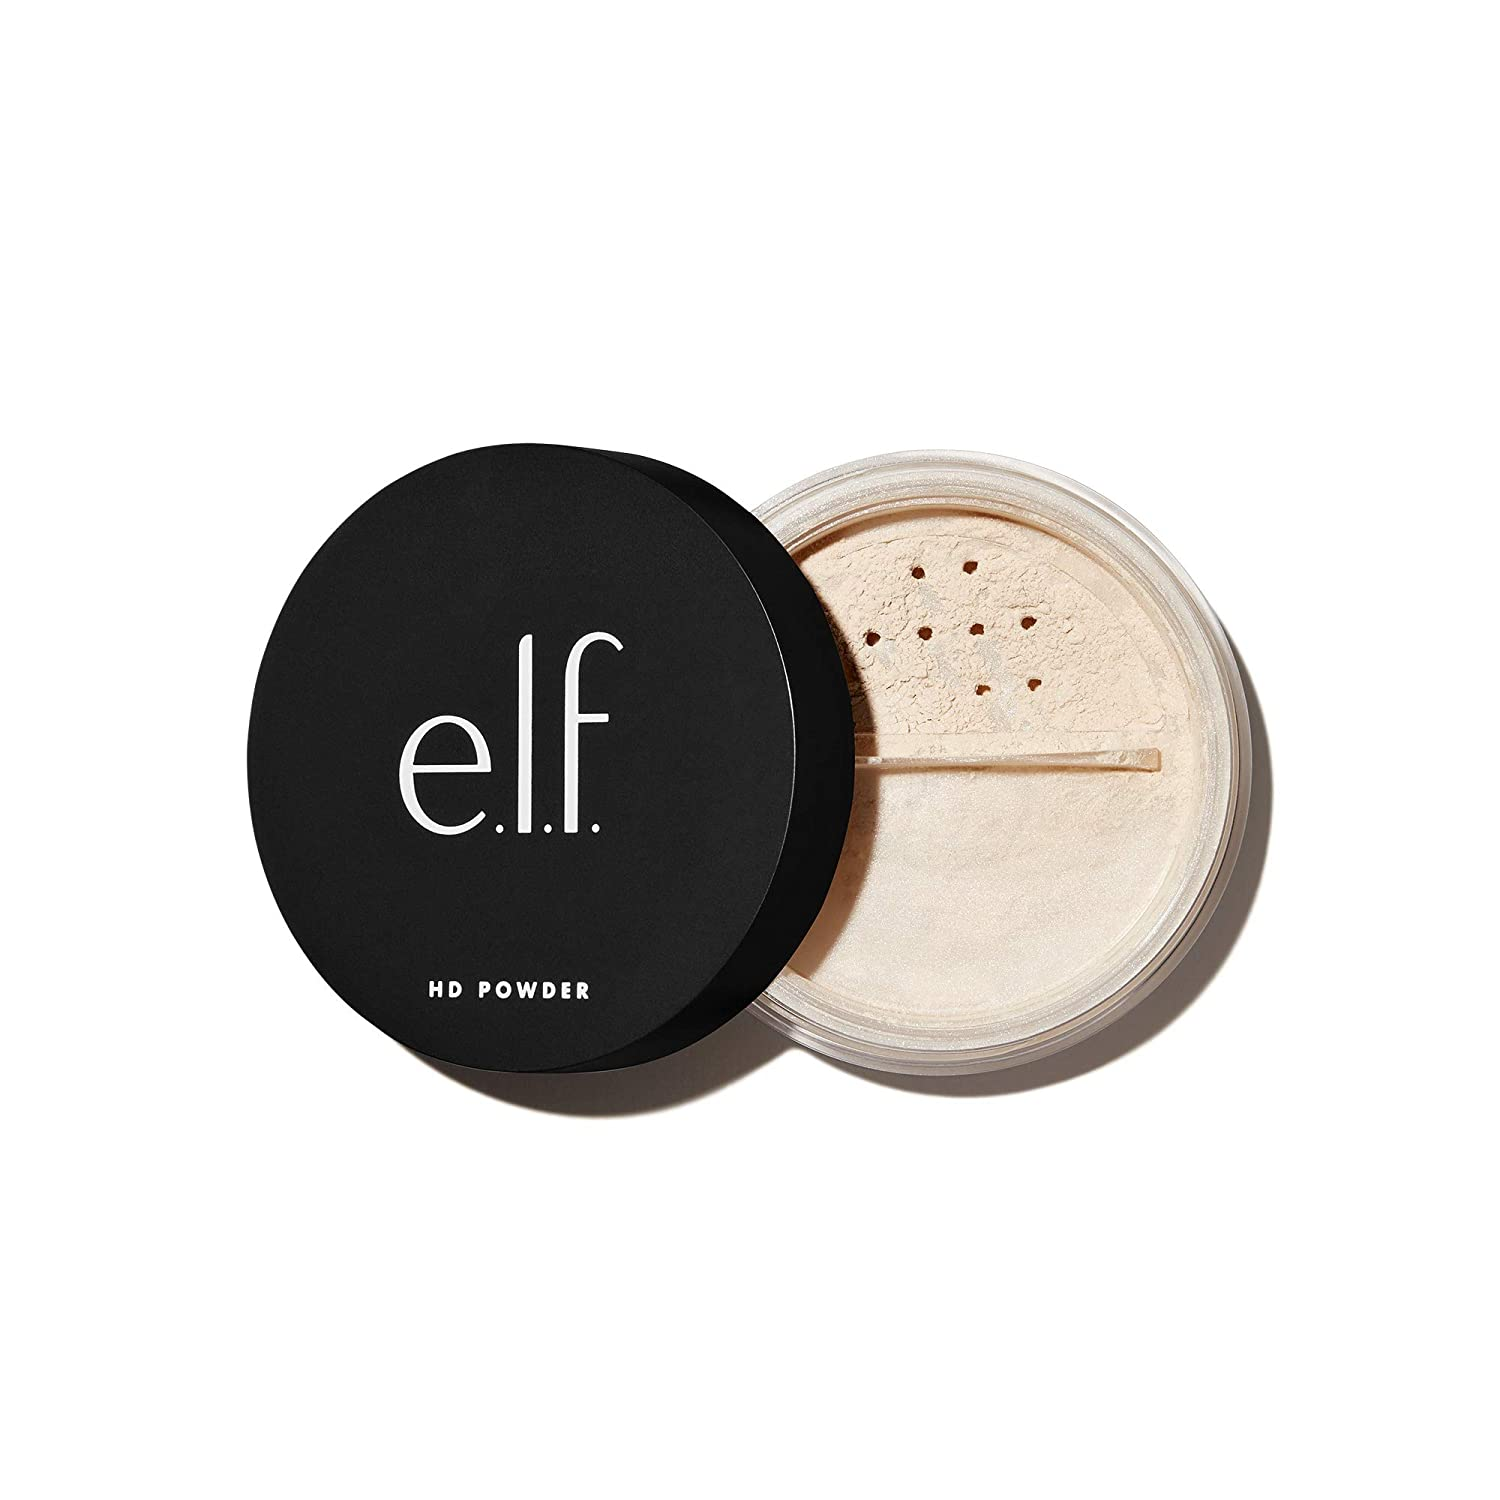 E.l.f Cosmetics High Definition Loose Powder